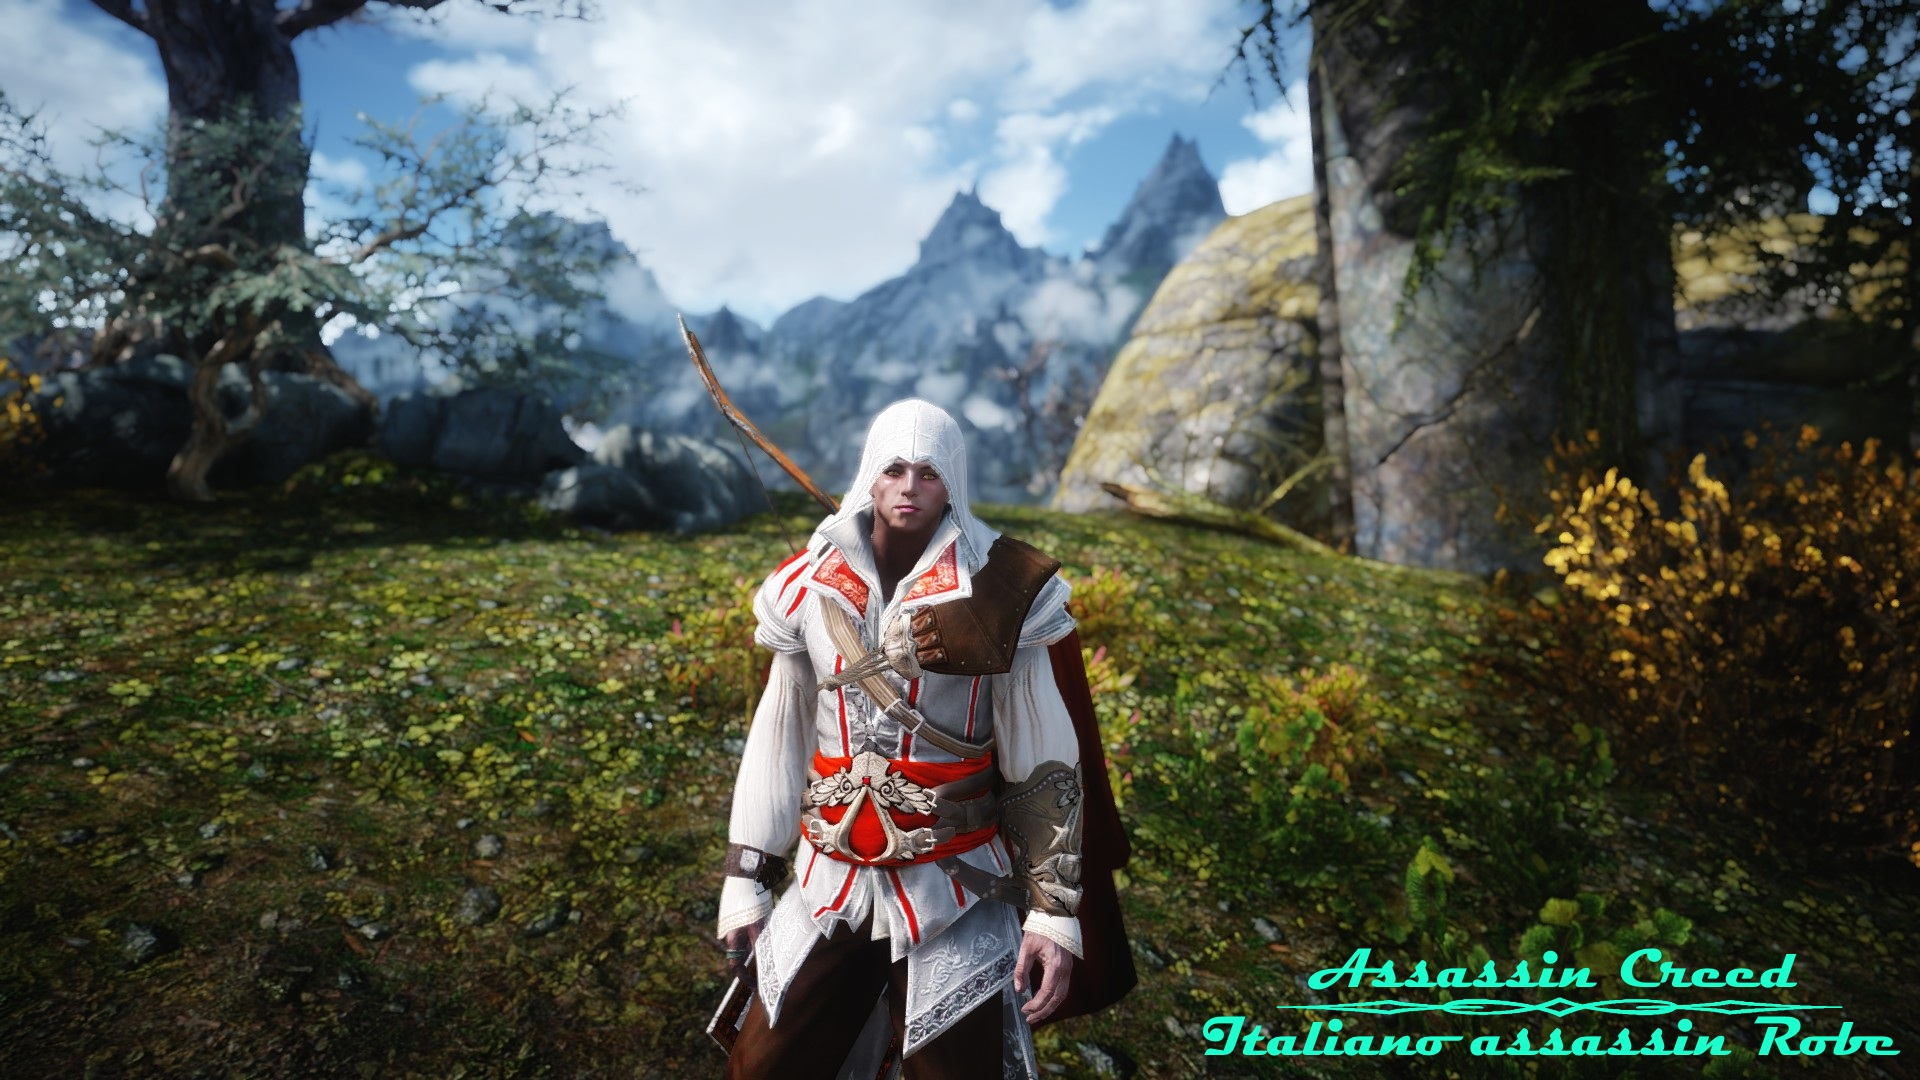 Assassin's_Creed_2_Italiana_assassin_Robe_L.jpg